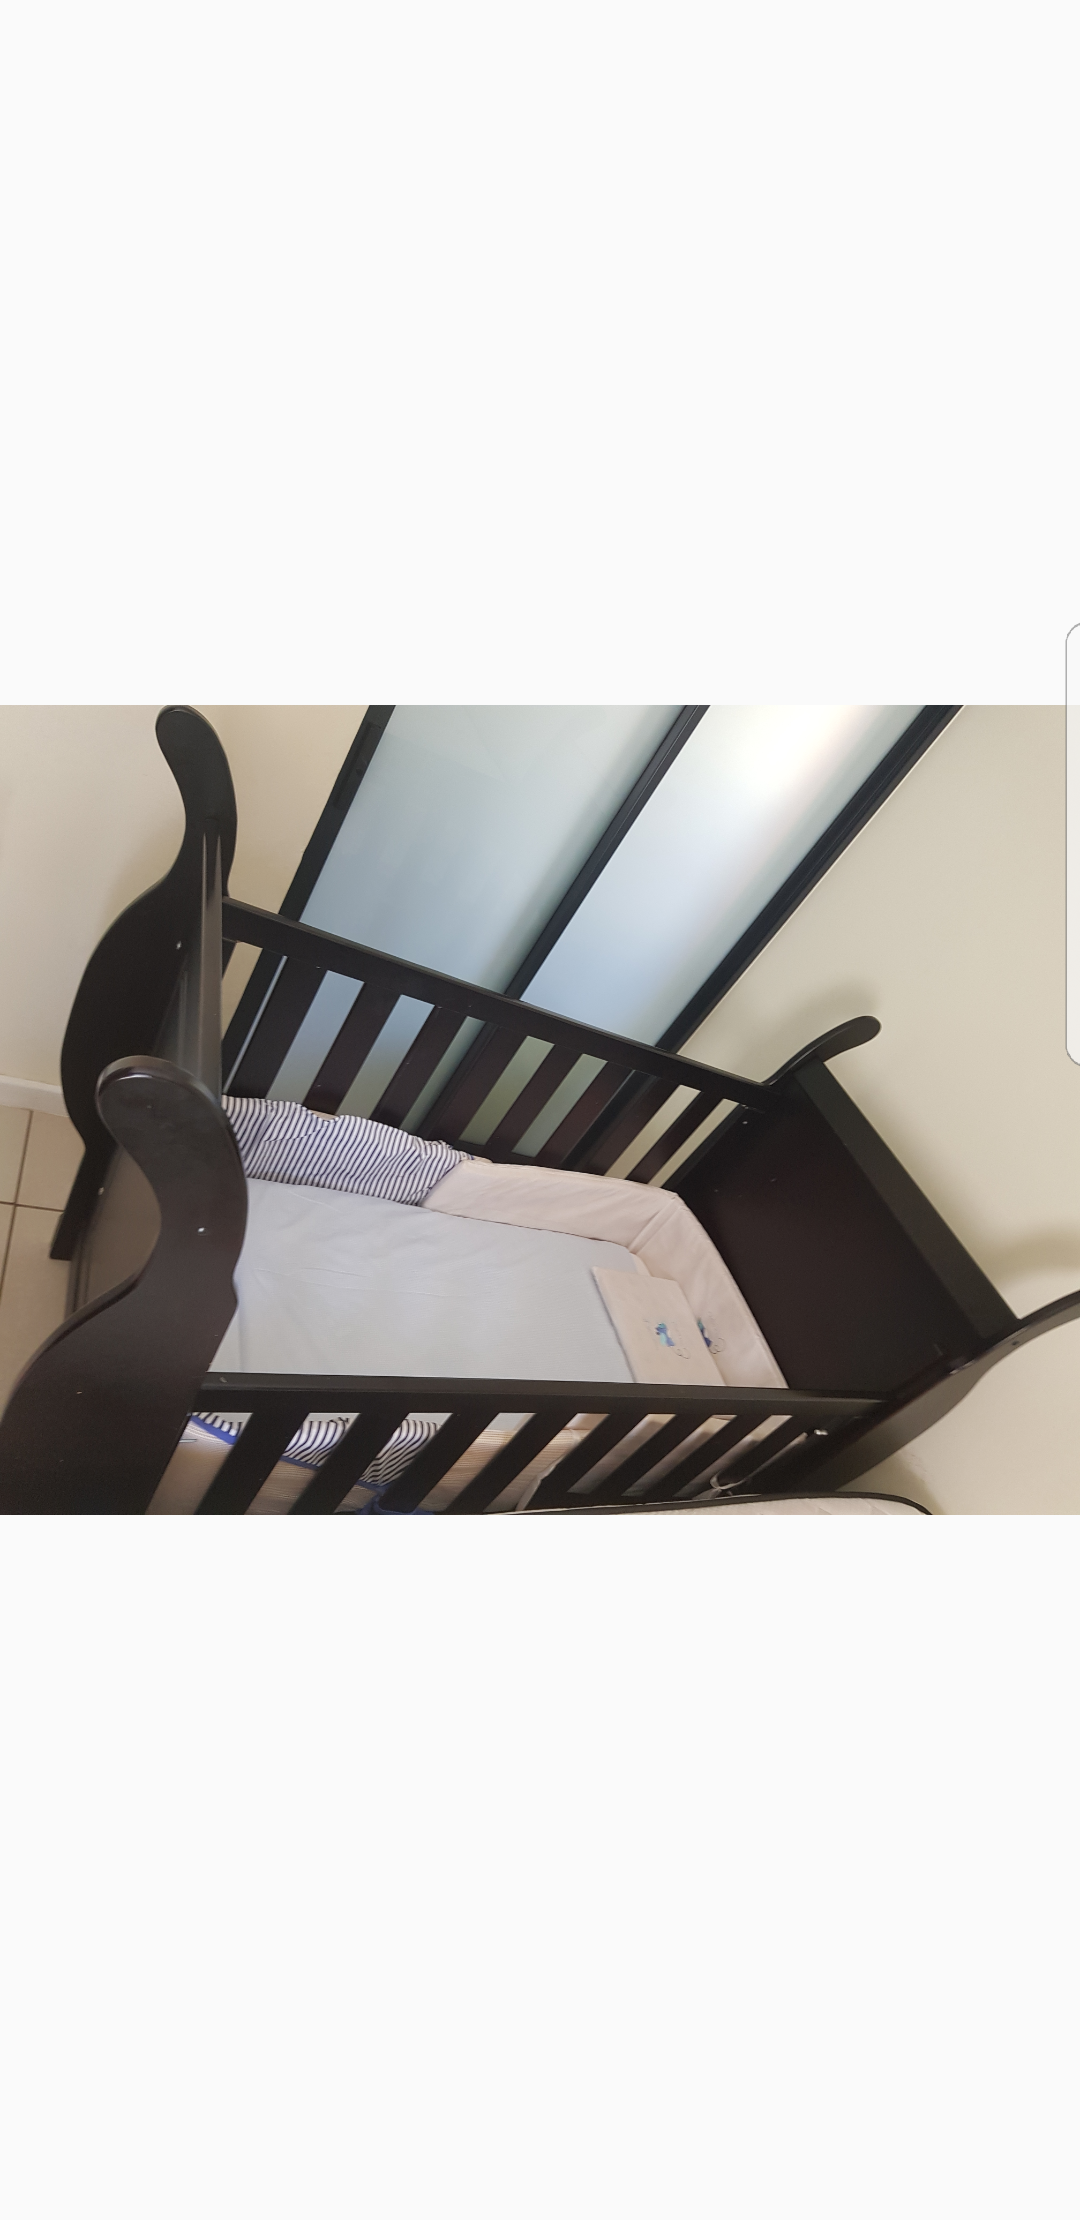 Sleigh dark wood cot 2300 contact Sarish 0835380362